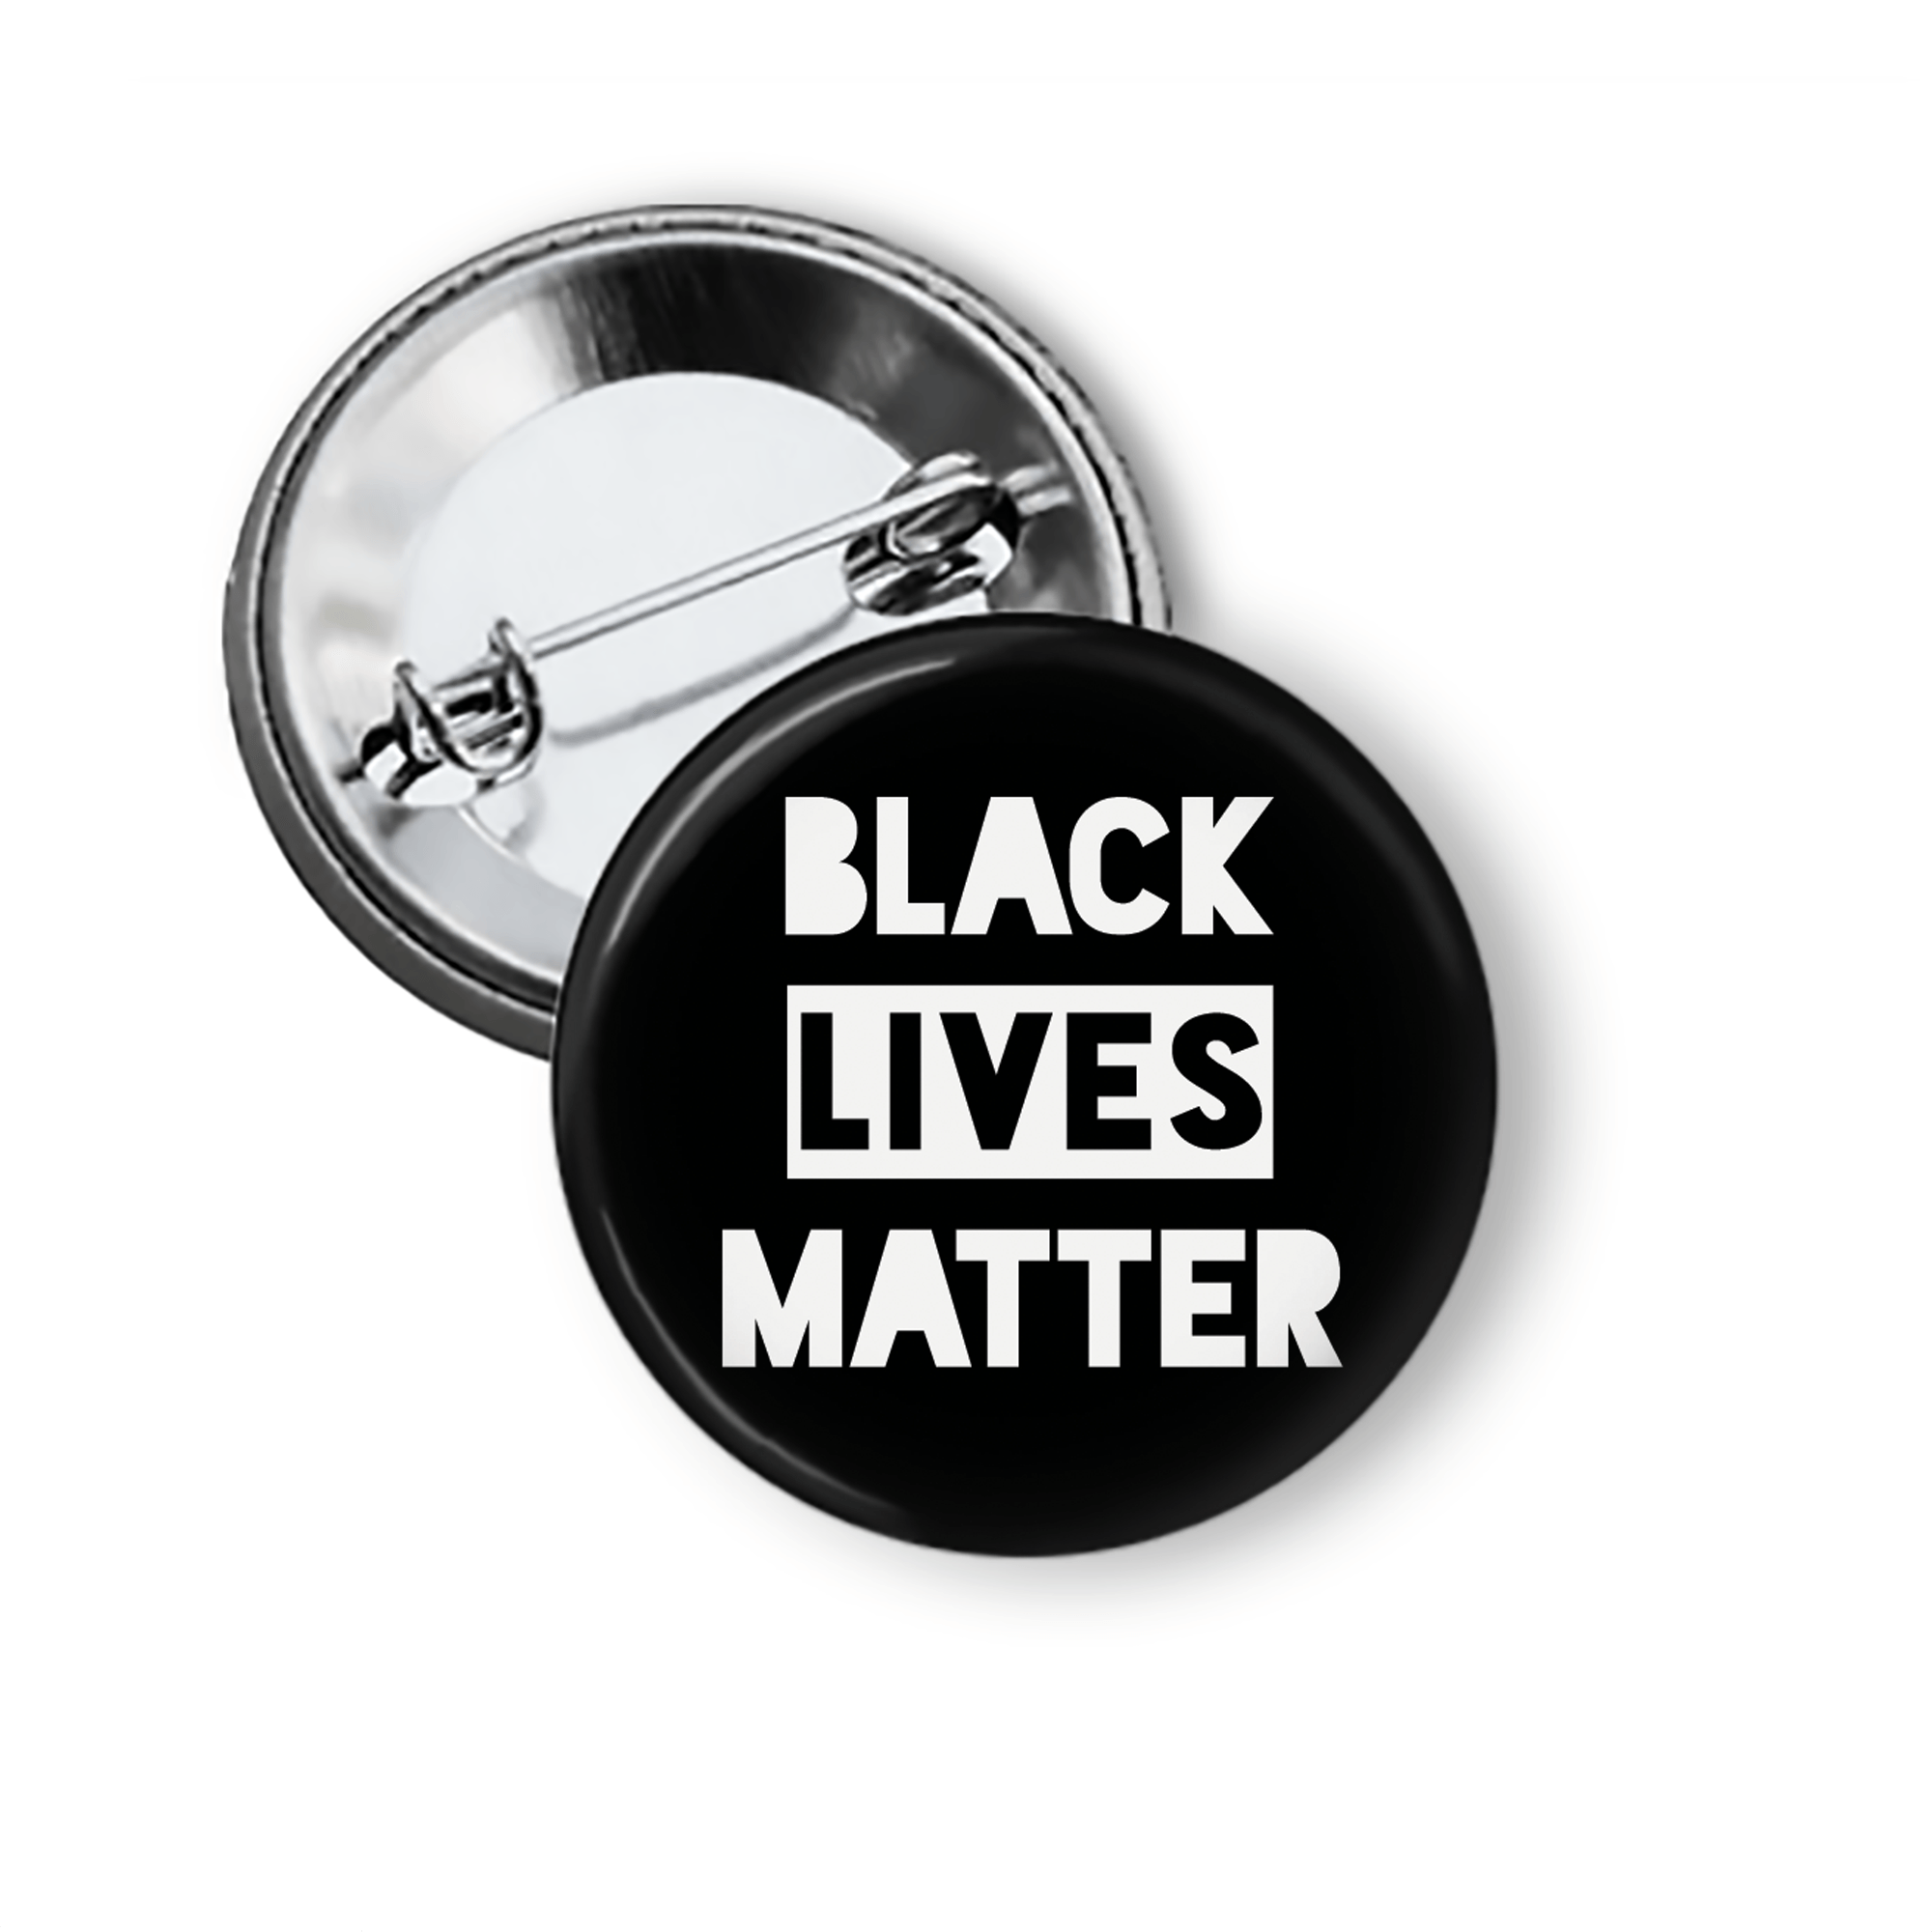 Black Lives Matter Pinback Button Pins Buttons For the People